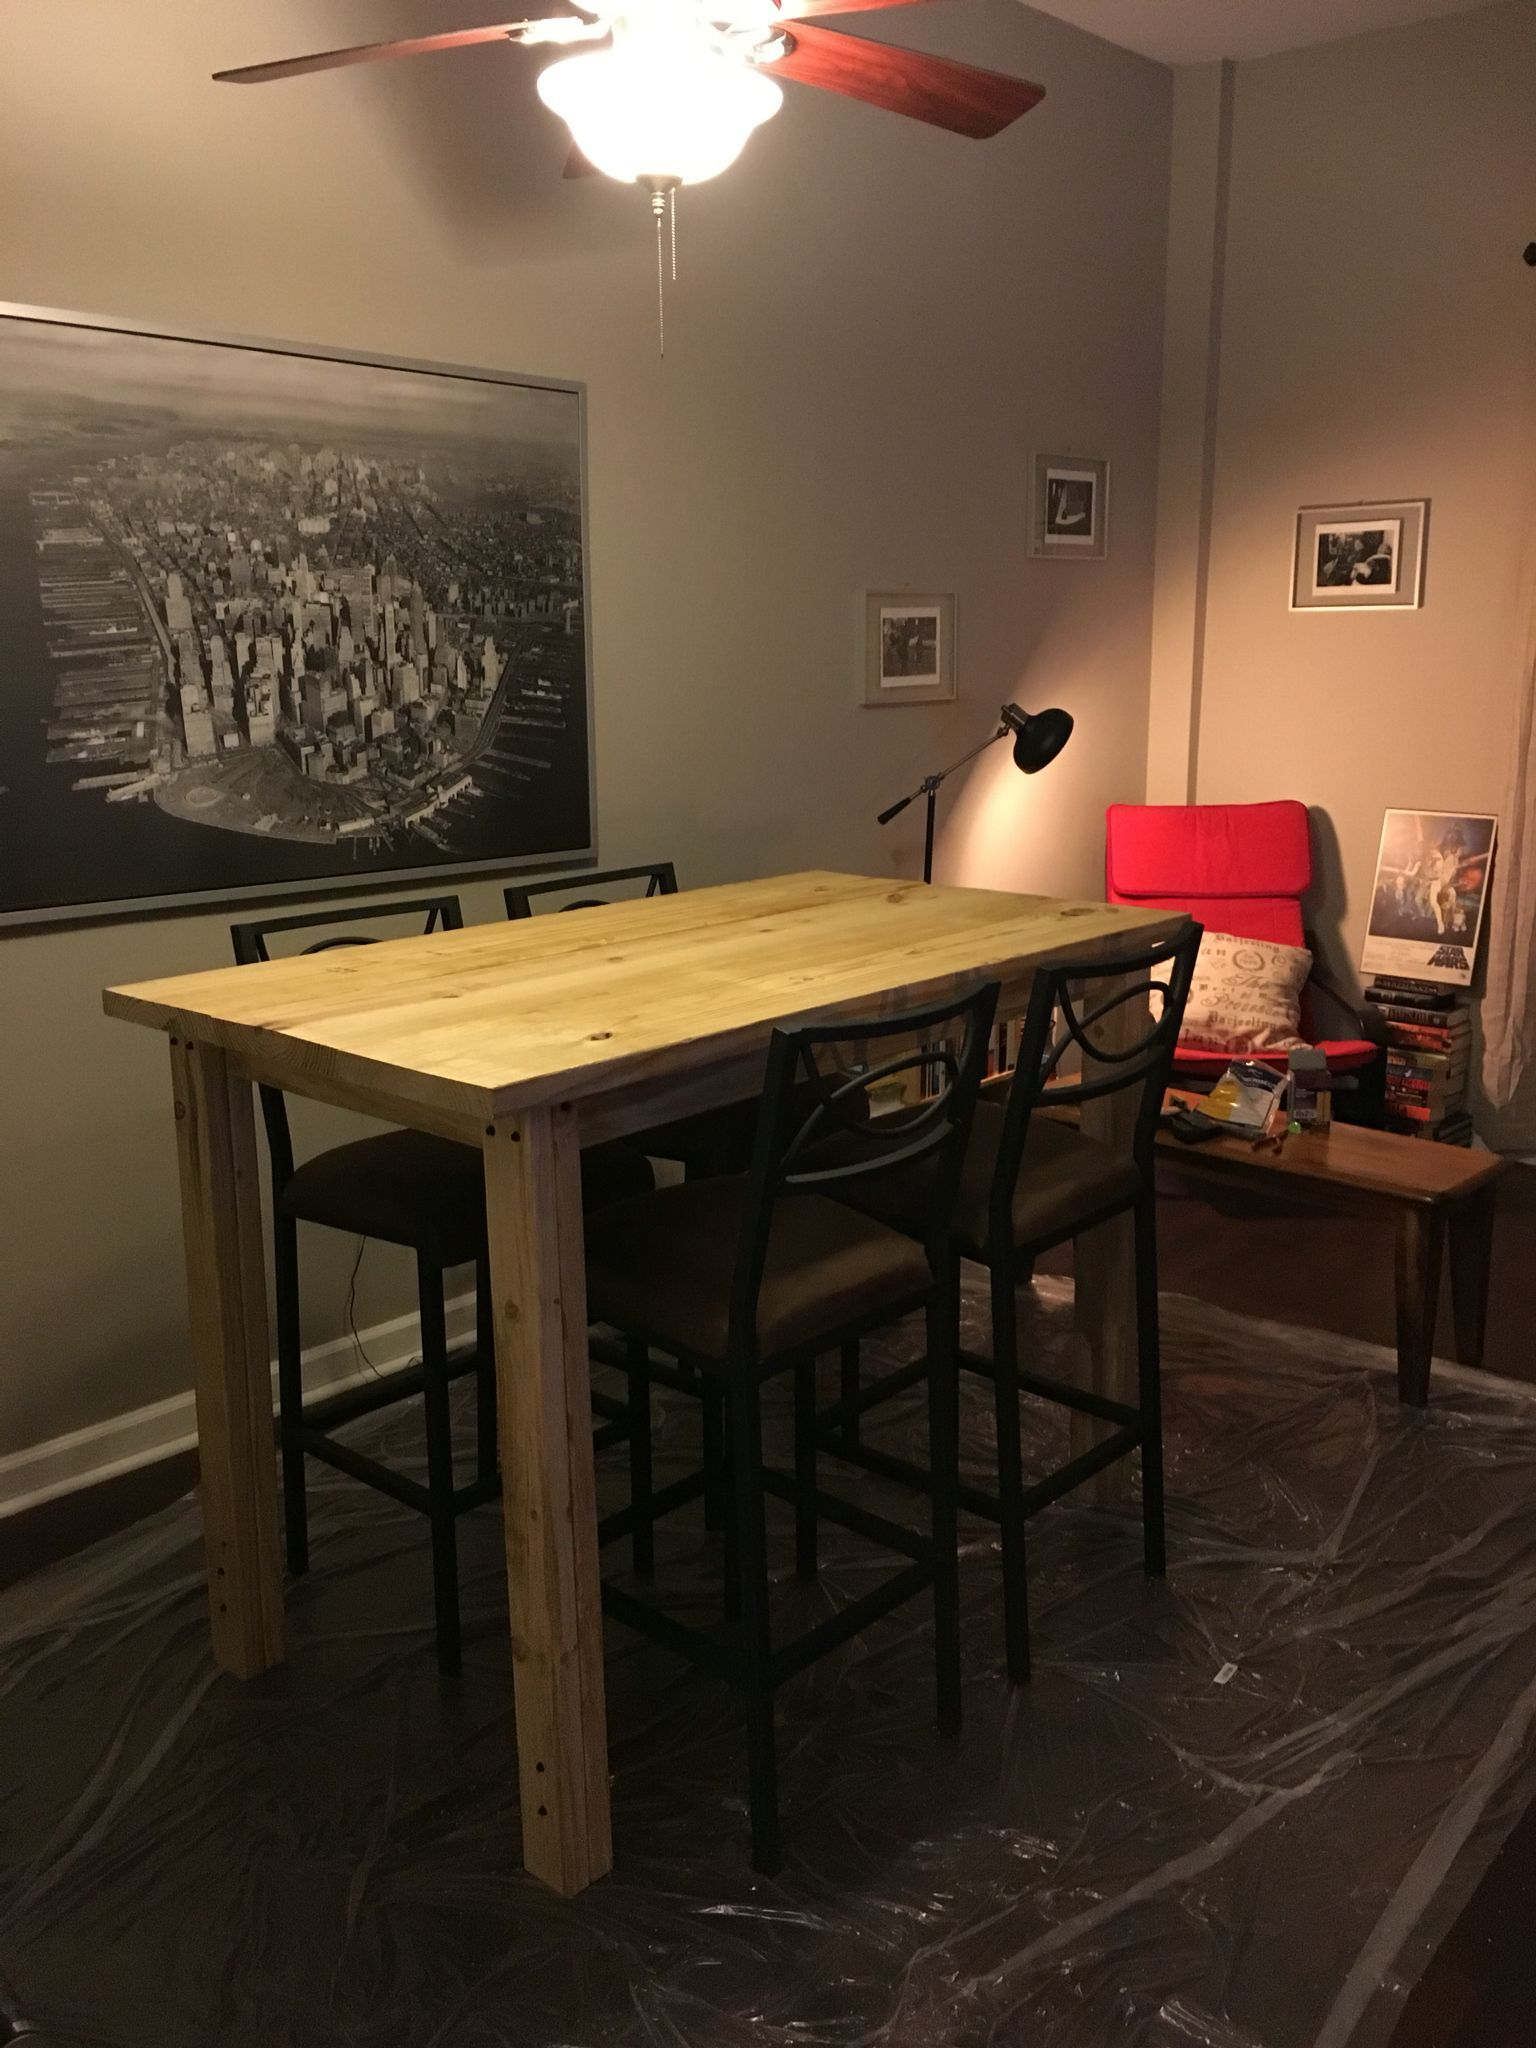 DIY Bar Height Farmhouse Table Lumber Supplies From Lowes Cost About